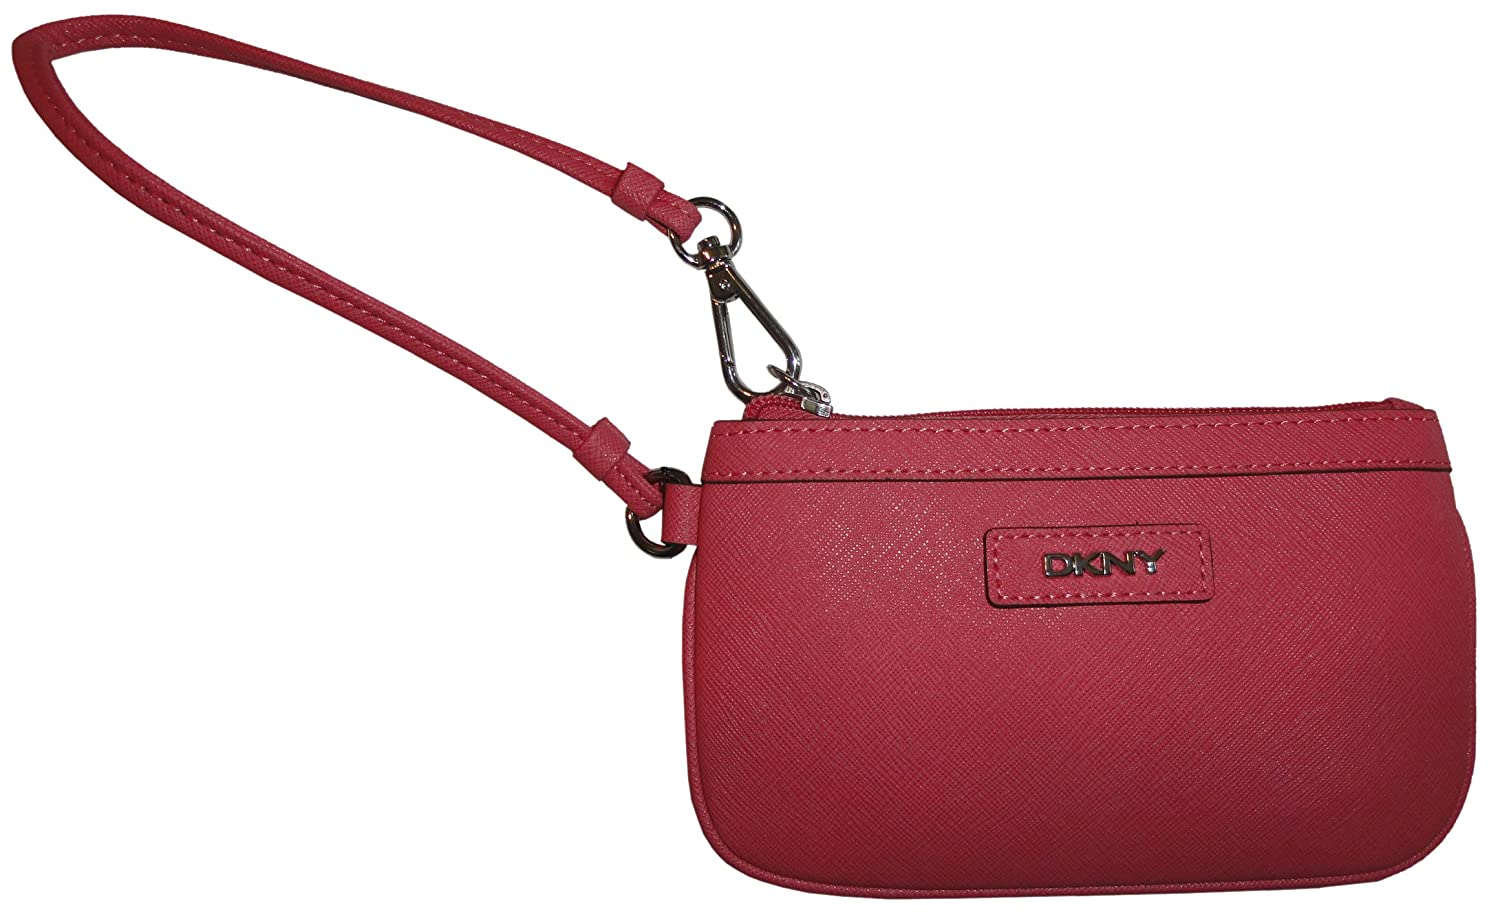 DKNY Women's Saffiano Leather Wristlet with Logo Plaque Coral